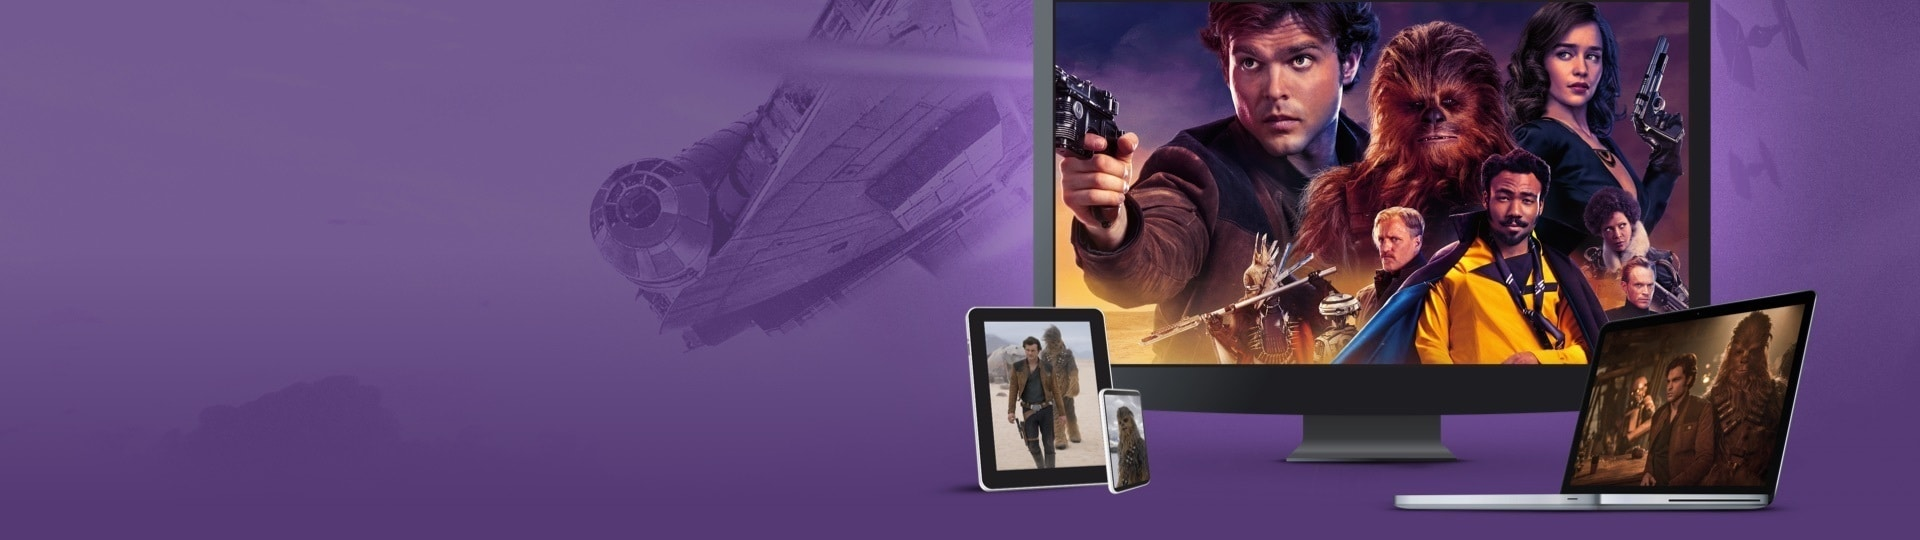 Han Solo: Una Historia De Star Wars | Disponible para descargar y disfrutar